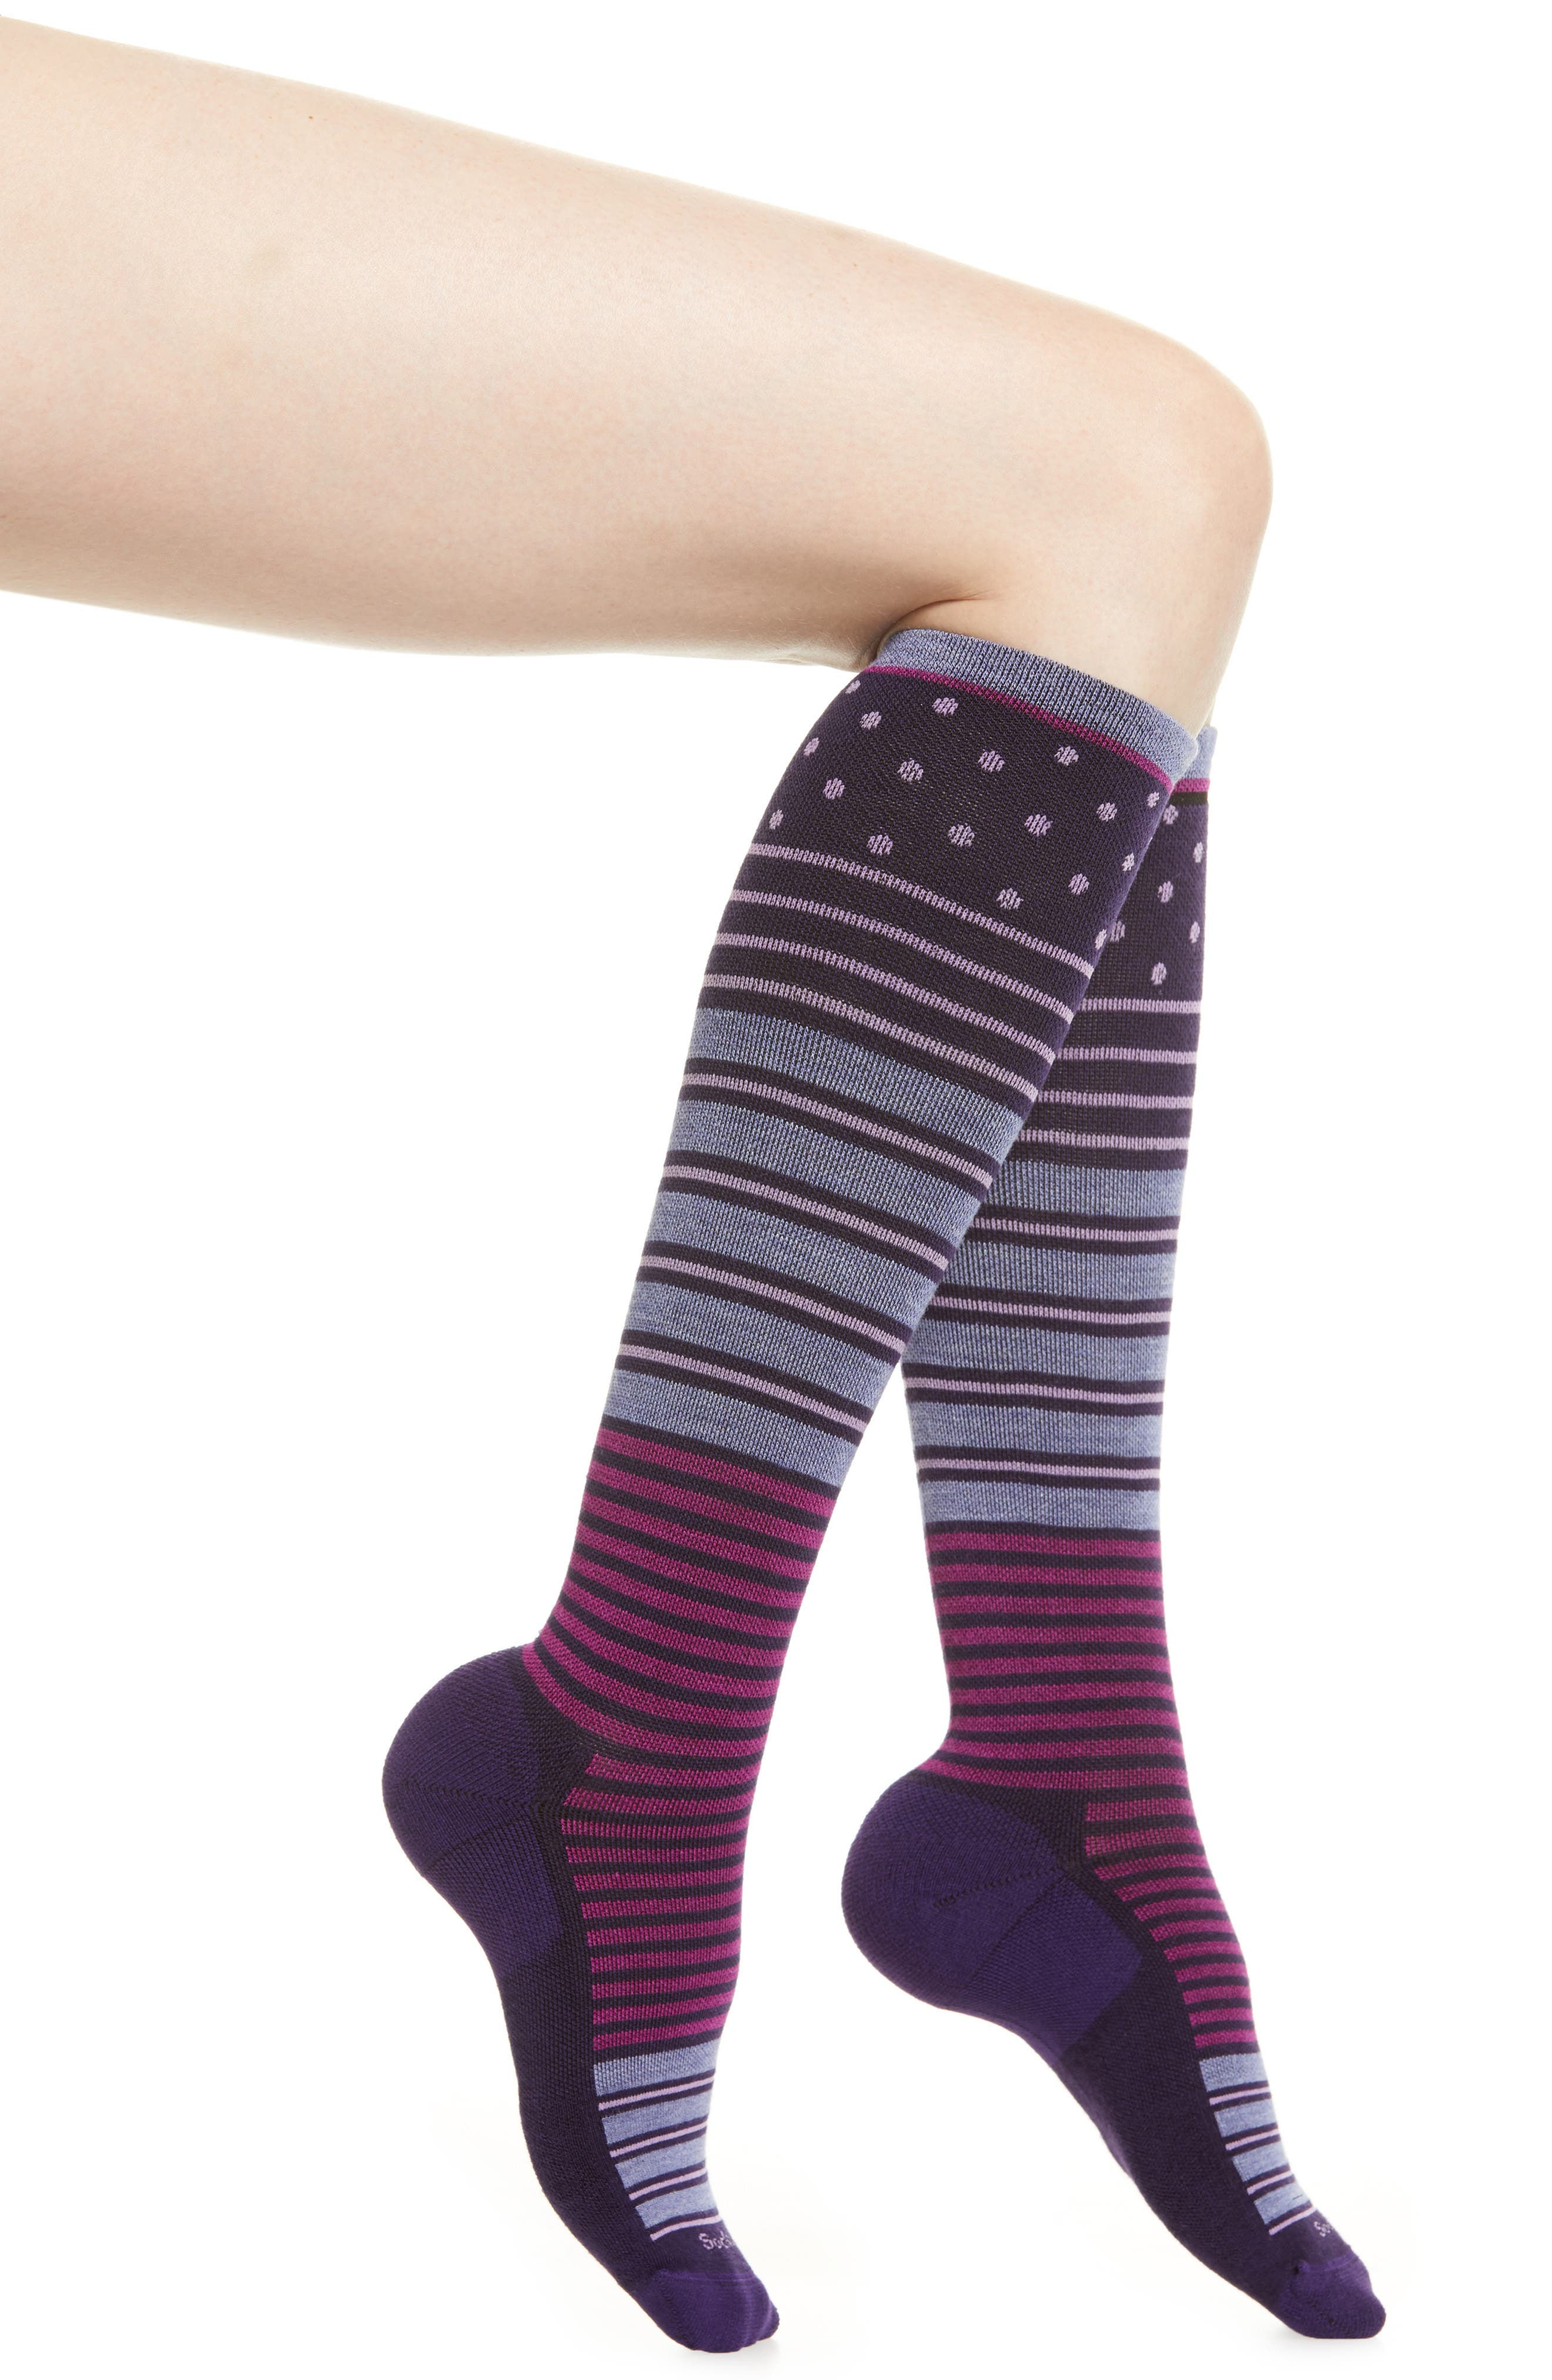 'Twister' Merino Wool Blend Compression Socks,                         Main,                         color, CONCORDE